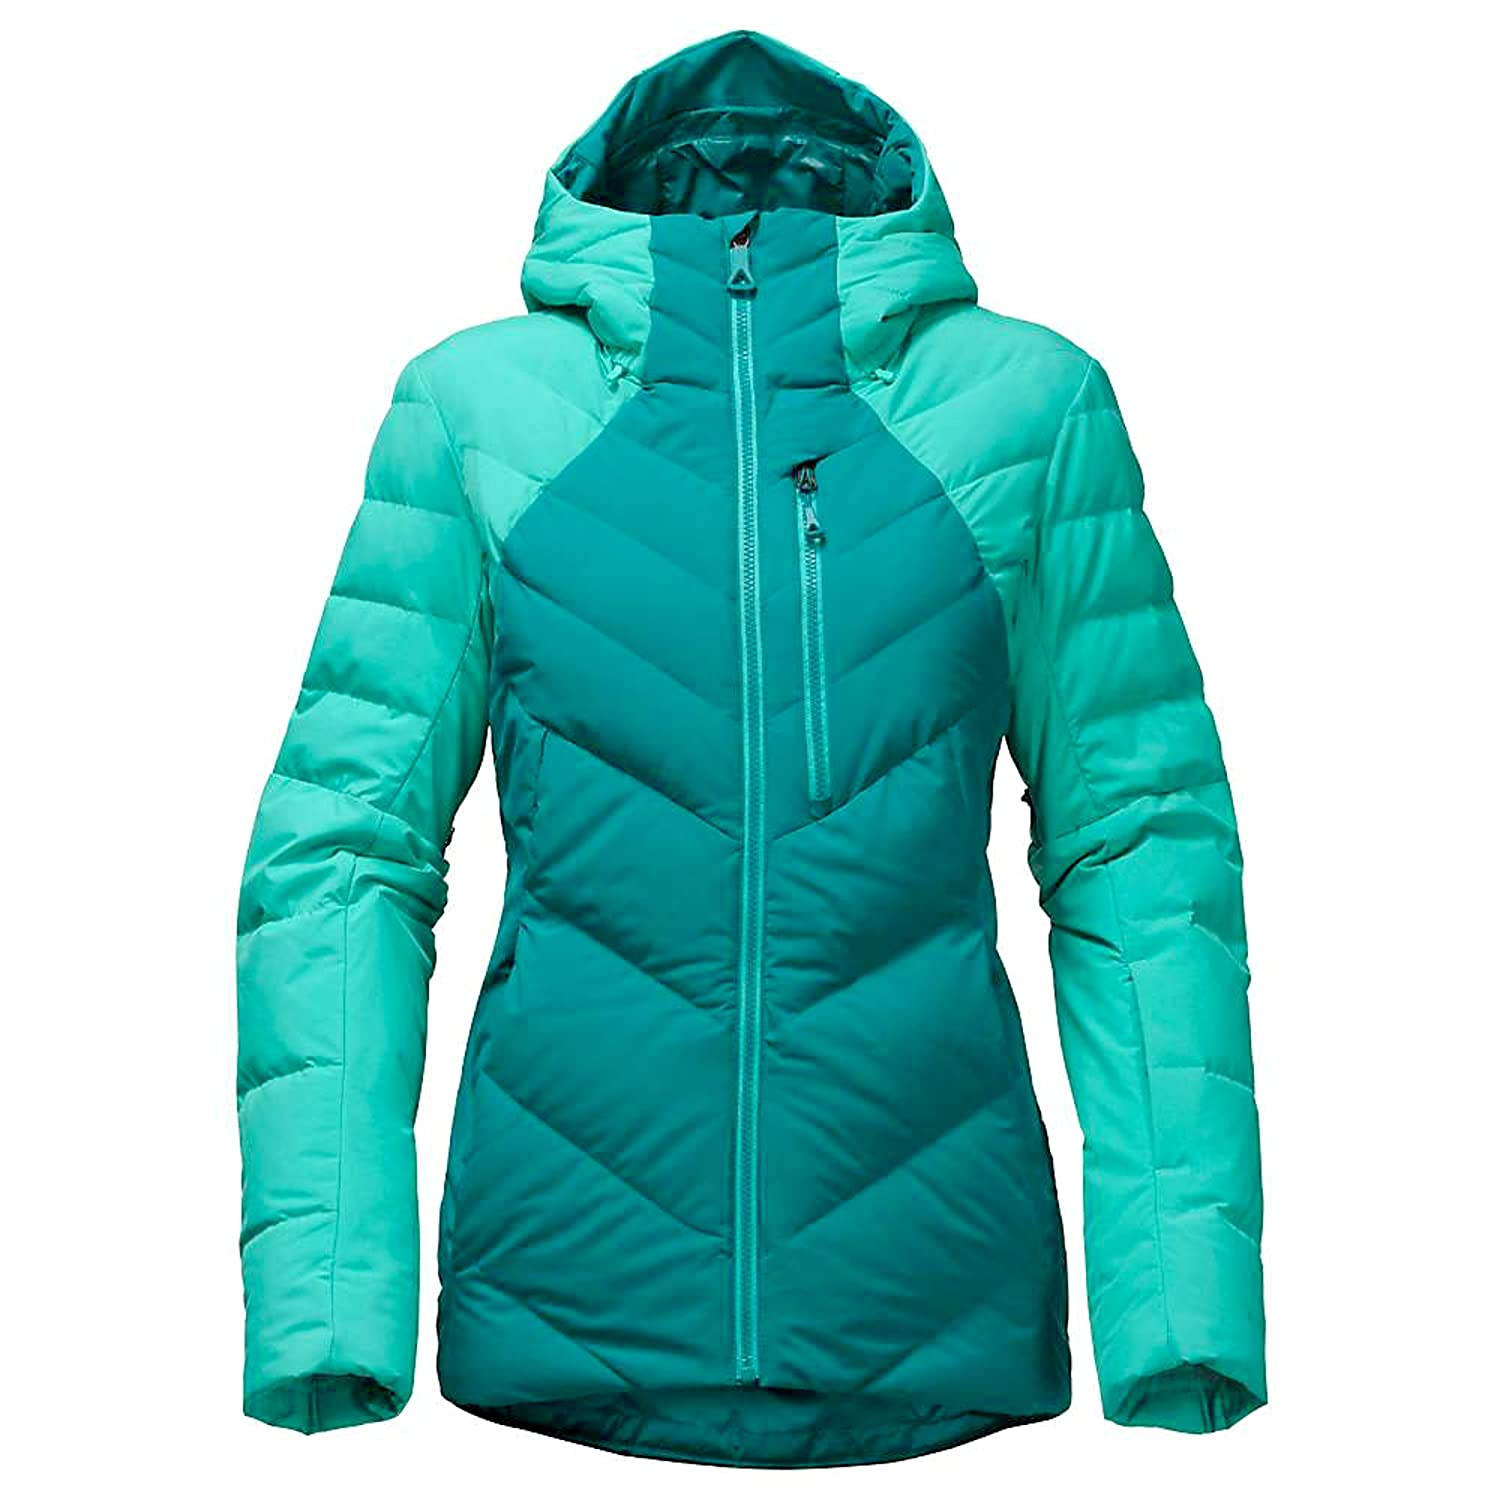 37d687f11 Amazon.com: The North Face Corefire Down Womens Insulated Ski Jacket ...